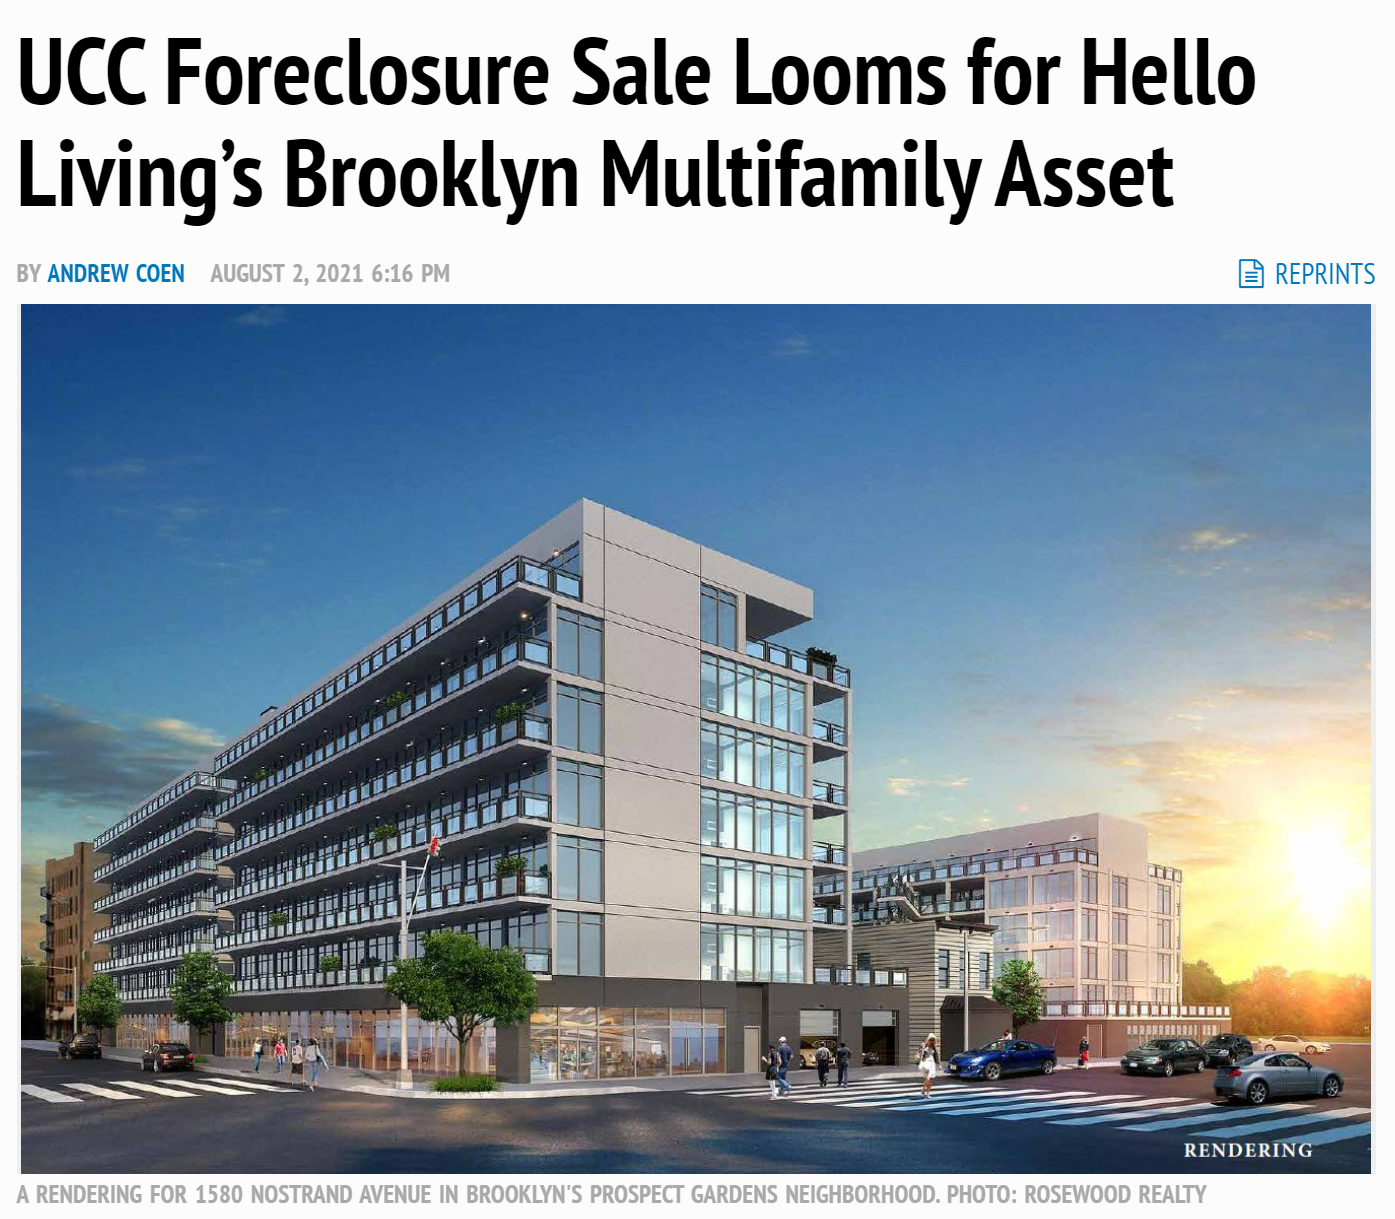 UCC Foreclosure Sale Looms for Hello Living's Brooklyn Multifamily Asset